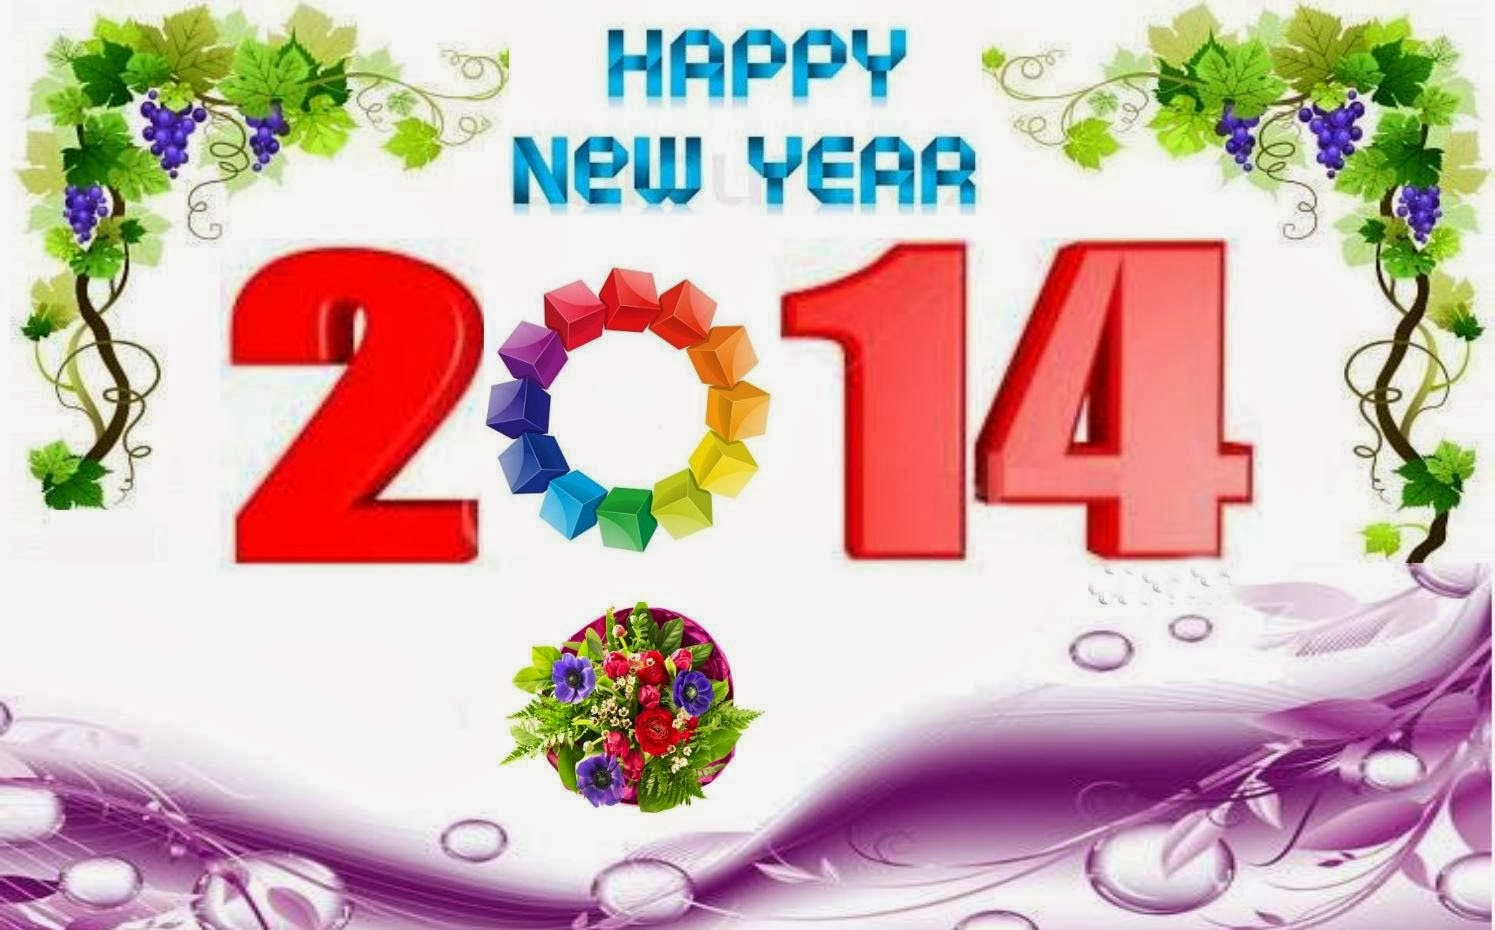 Welcome 2014 Happy New Year 2014